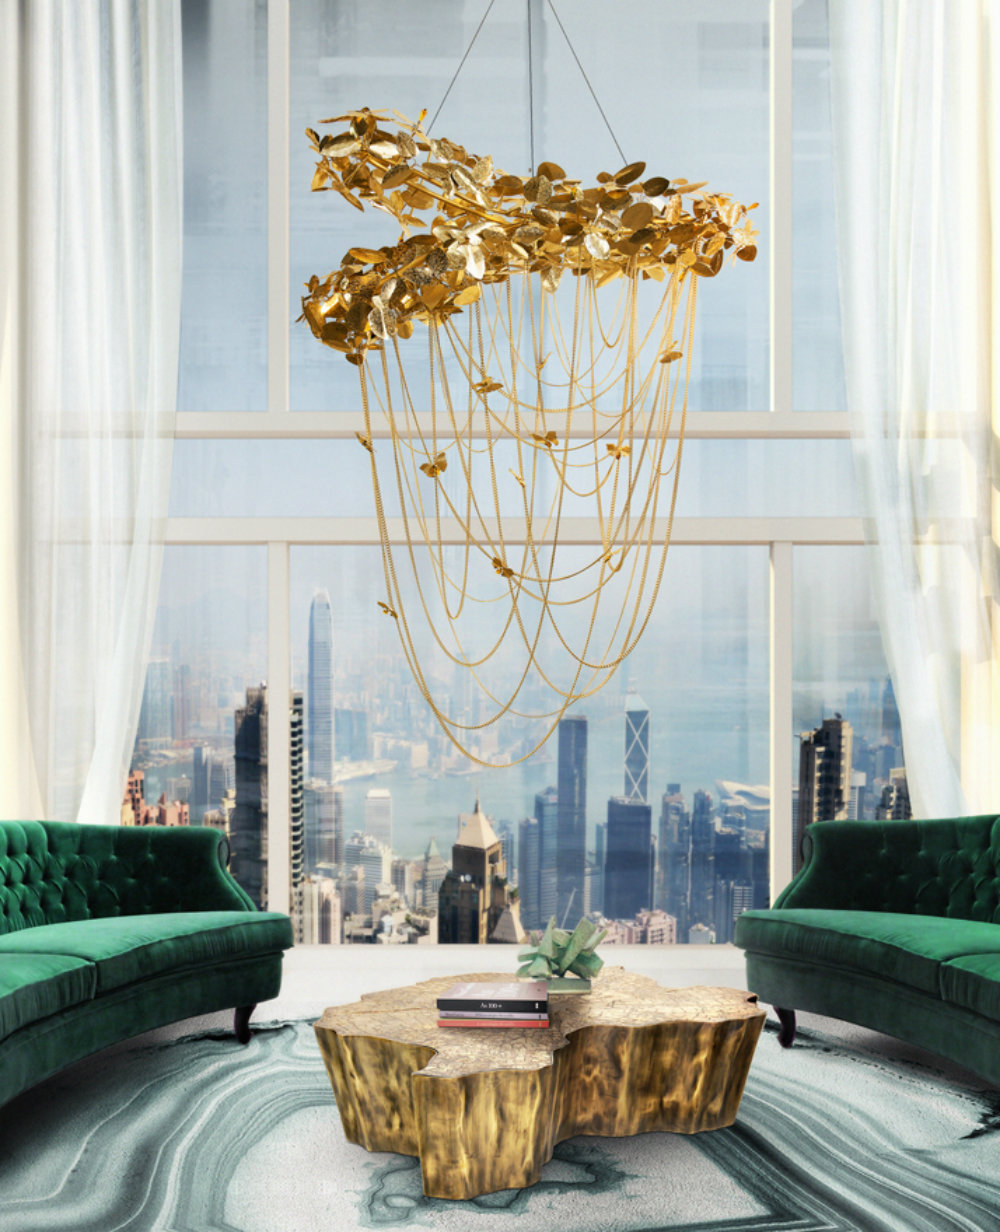 7 Modern Chandeliers To Take Your Home Decor To The Next Level